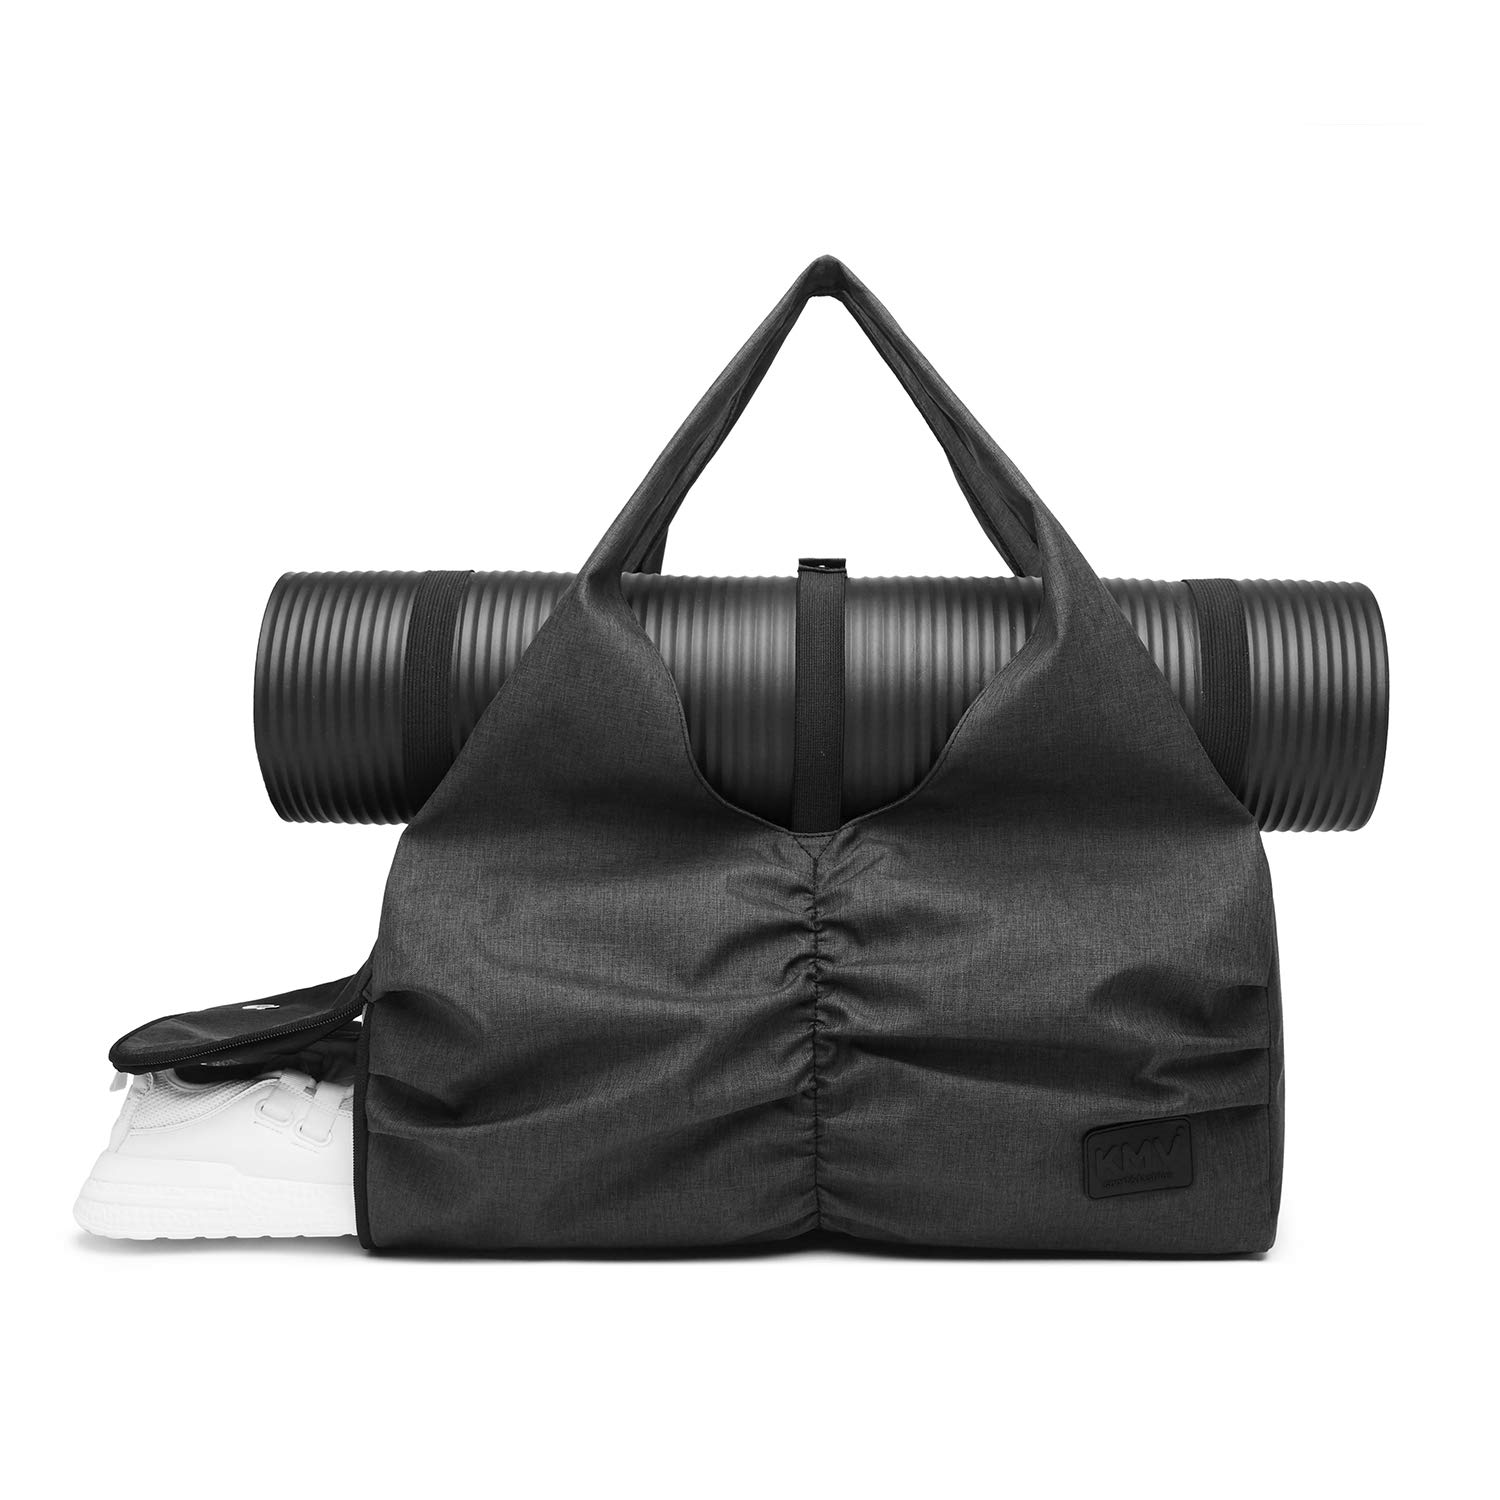 Travel Yoga Gym Bag for Women, Carrying Workout Gear, Makeup, and Accessories, Shoe Compartment and Wet Dry Storage Pockets, Fun Medium,Black